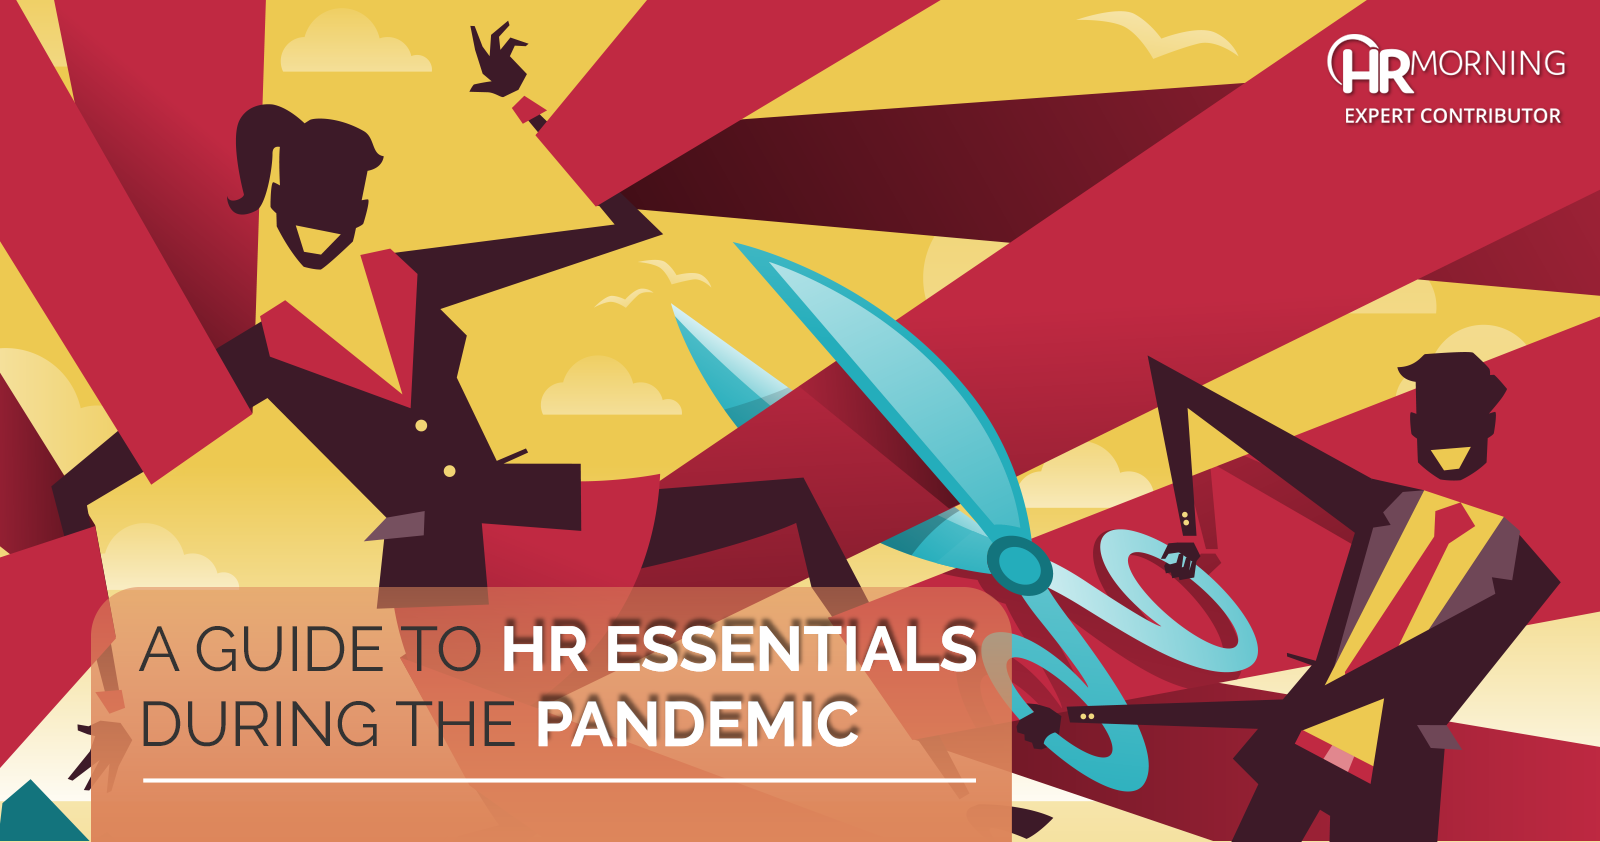 a guide to HR essentials during the pandemic